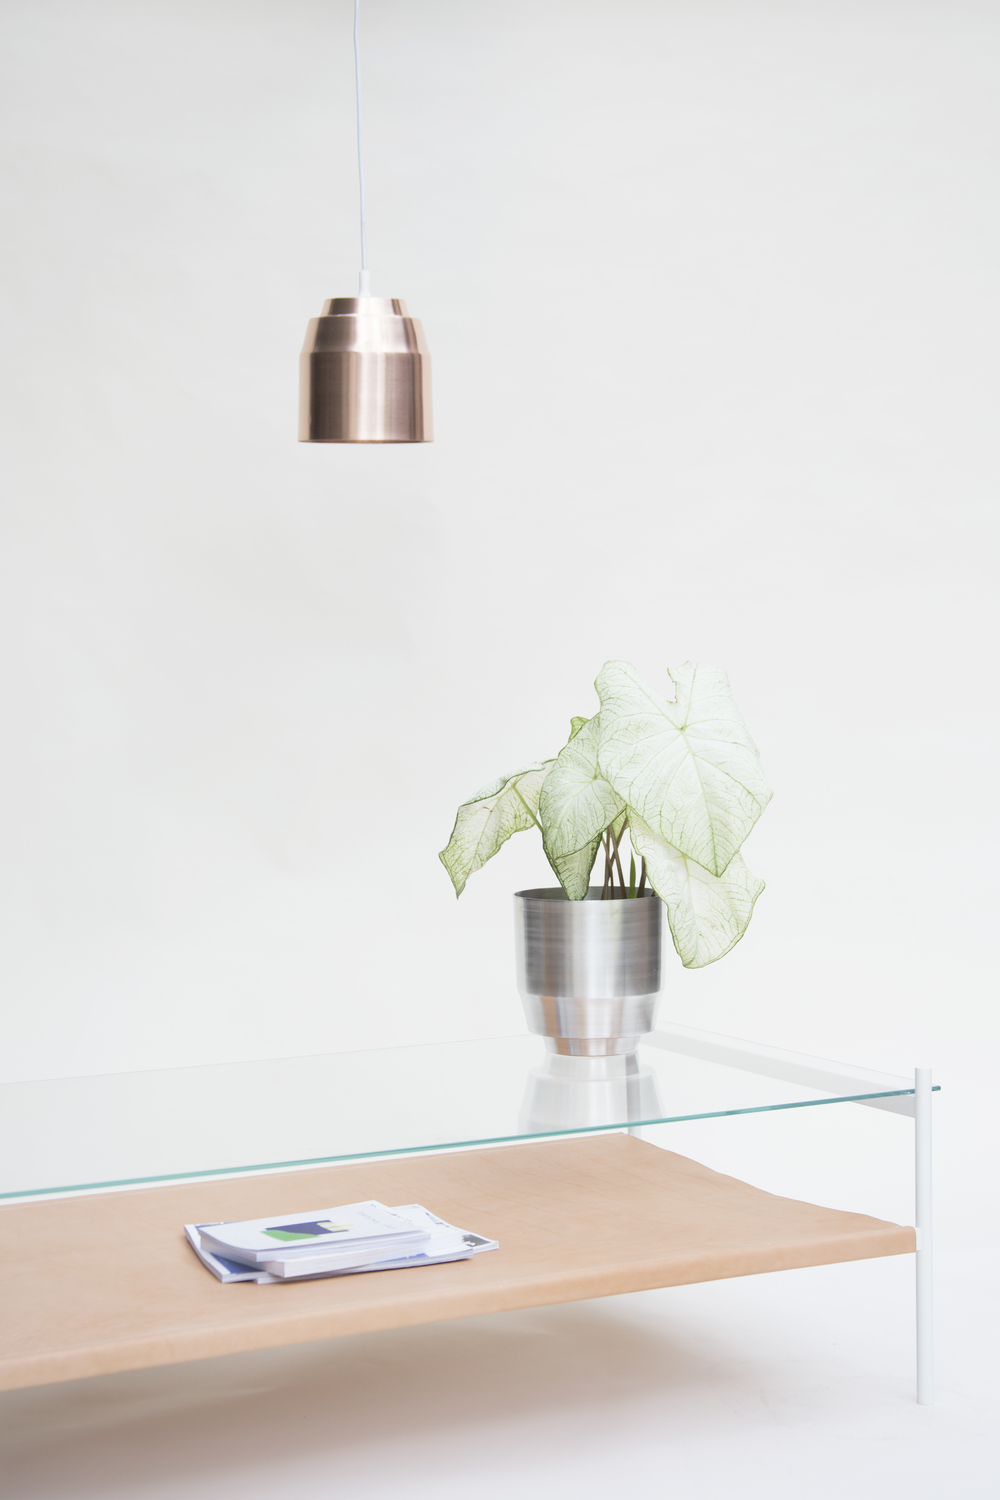 Copper and silver metalls at home #interiordesign